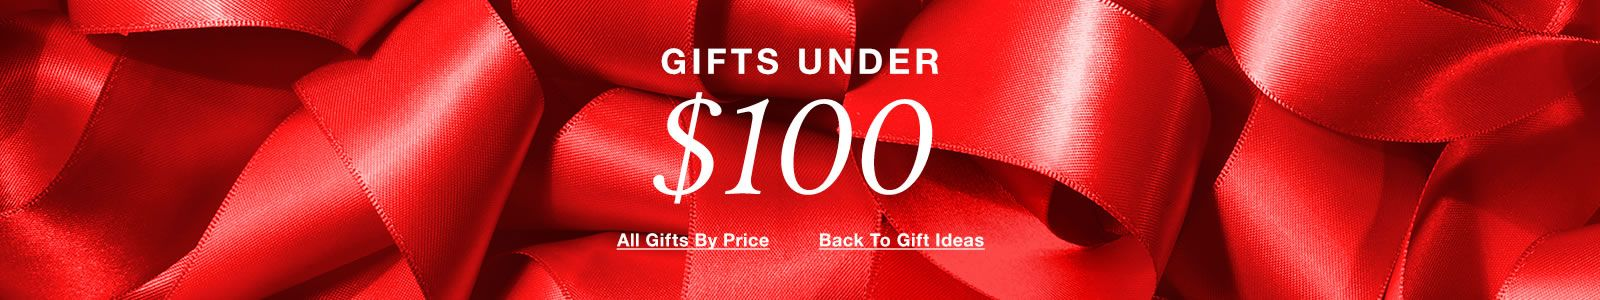 Gifts Under, $100, All Gifts by Price, Back to Gifts Ideas